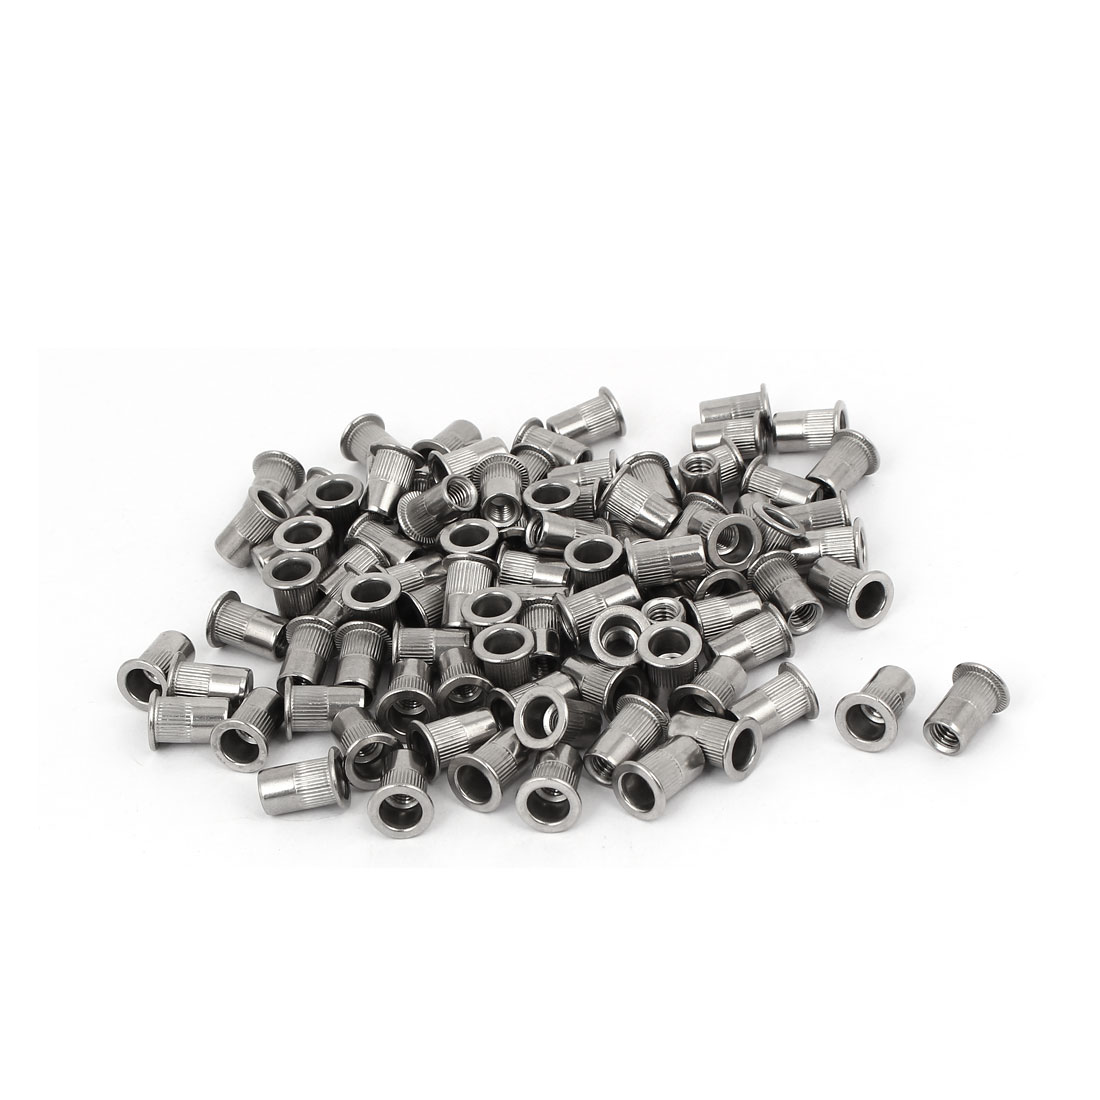 M6 x 15mm 304 Stainless Steel Knurled Flat Head Rivet Nut Insert Nutsert 100PCS